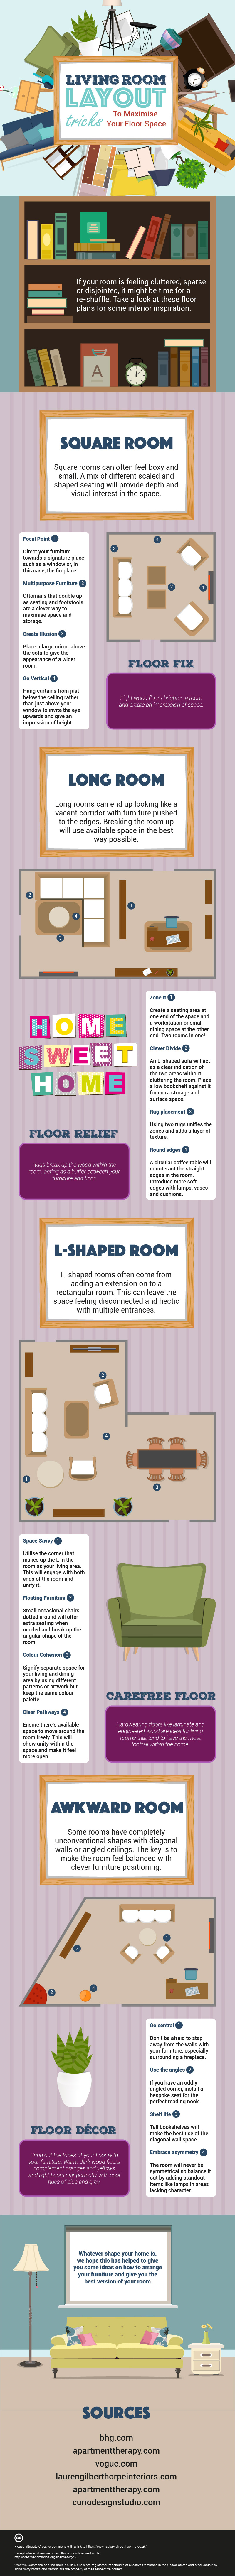 How To Maximise The Space In Your Living Room - Infographic